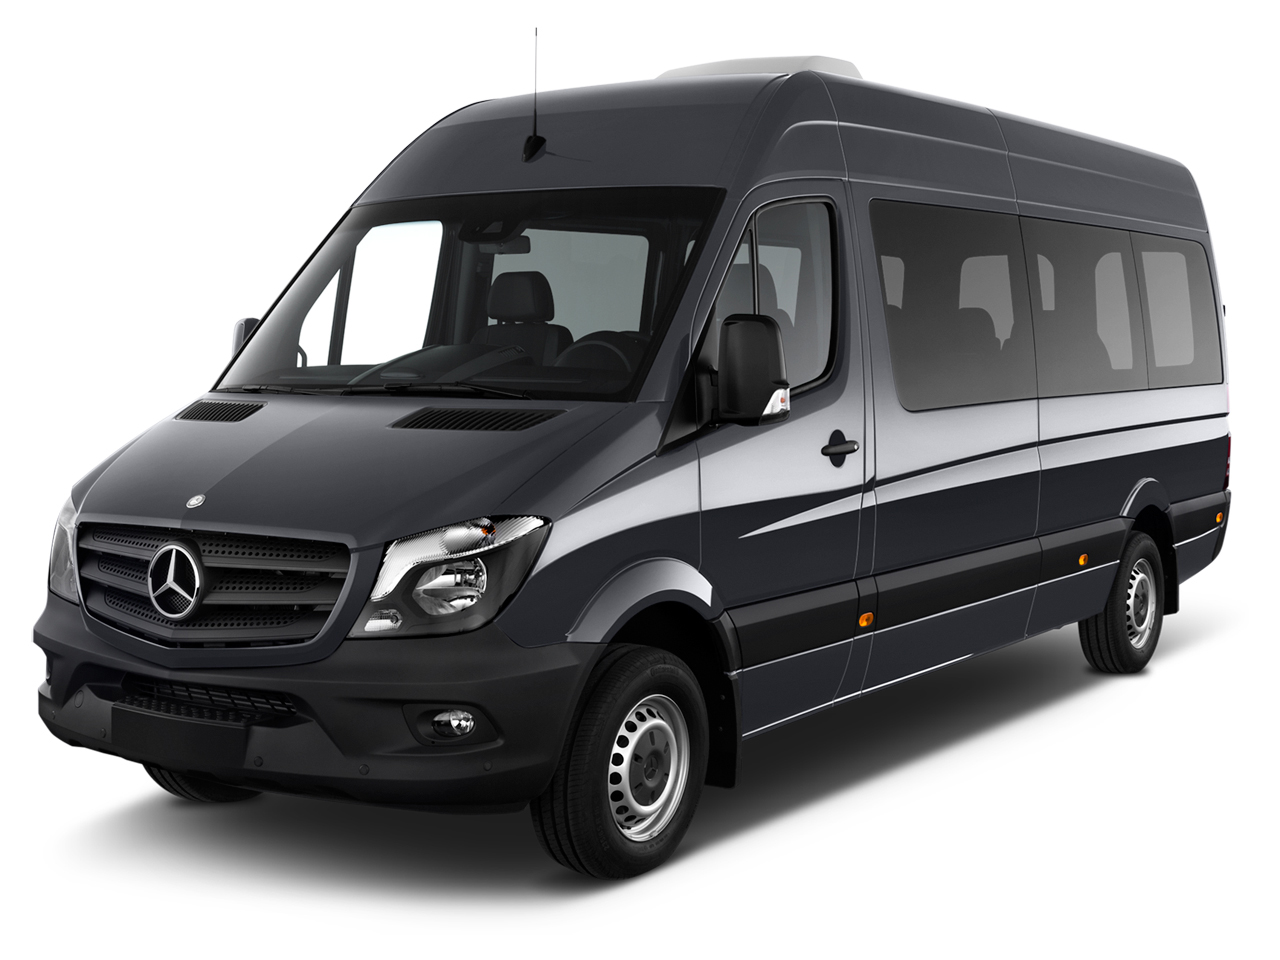 2016 mercedes benz sprinter passenger vans review ratings for Mercedes benz 2500